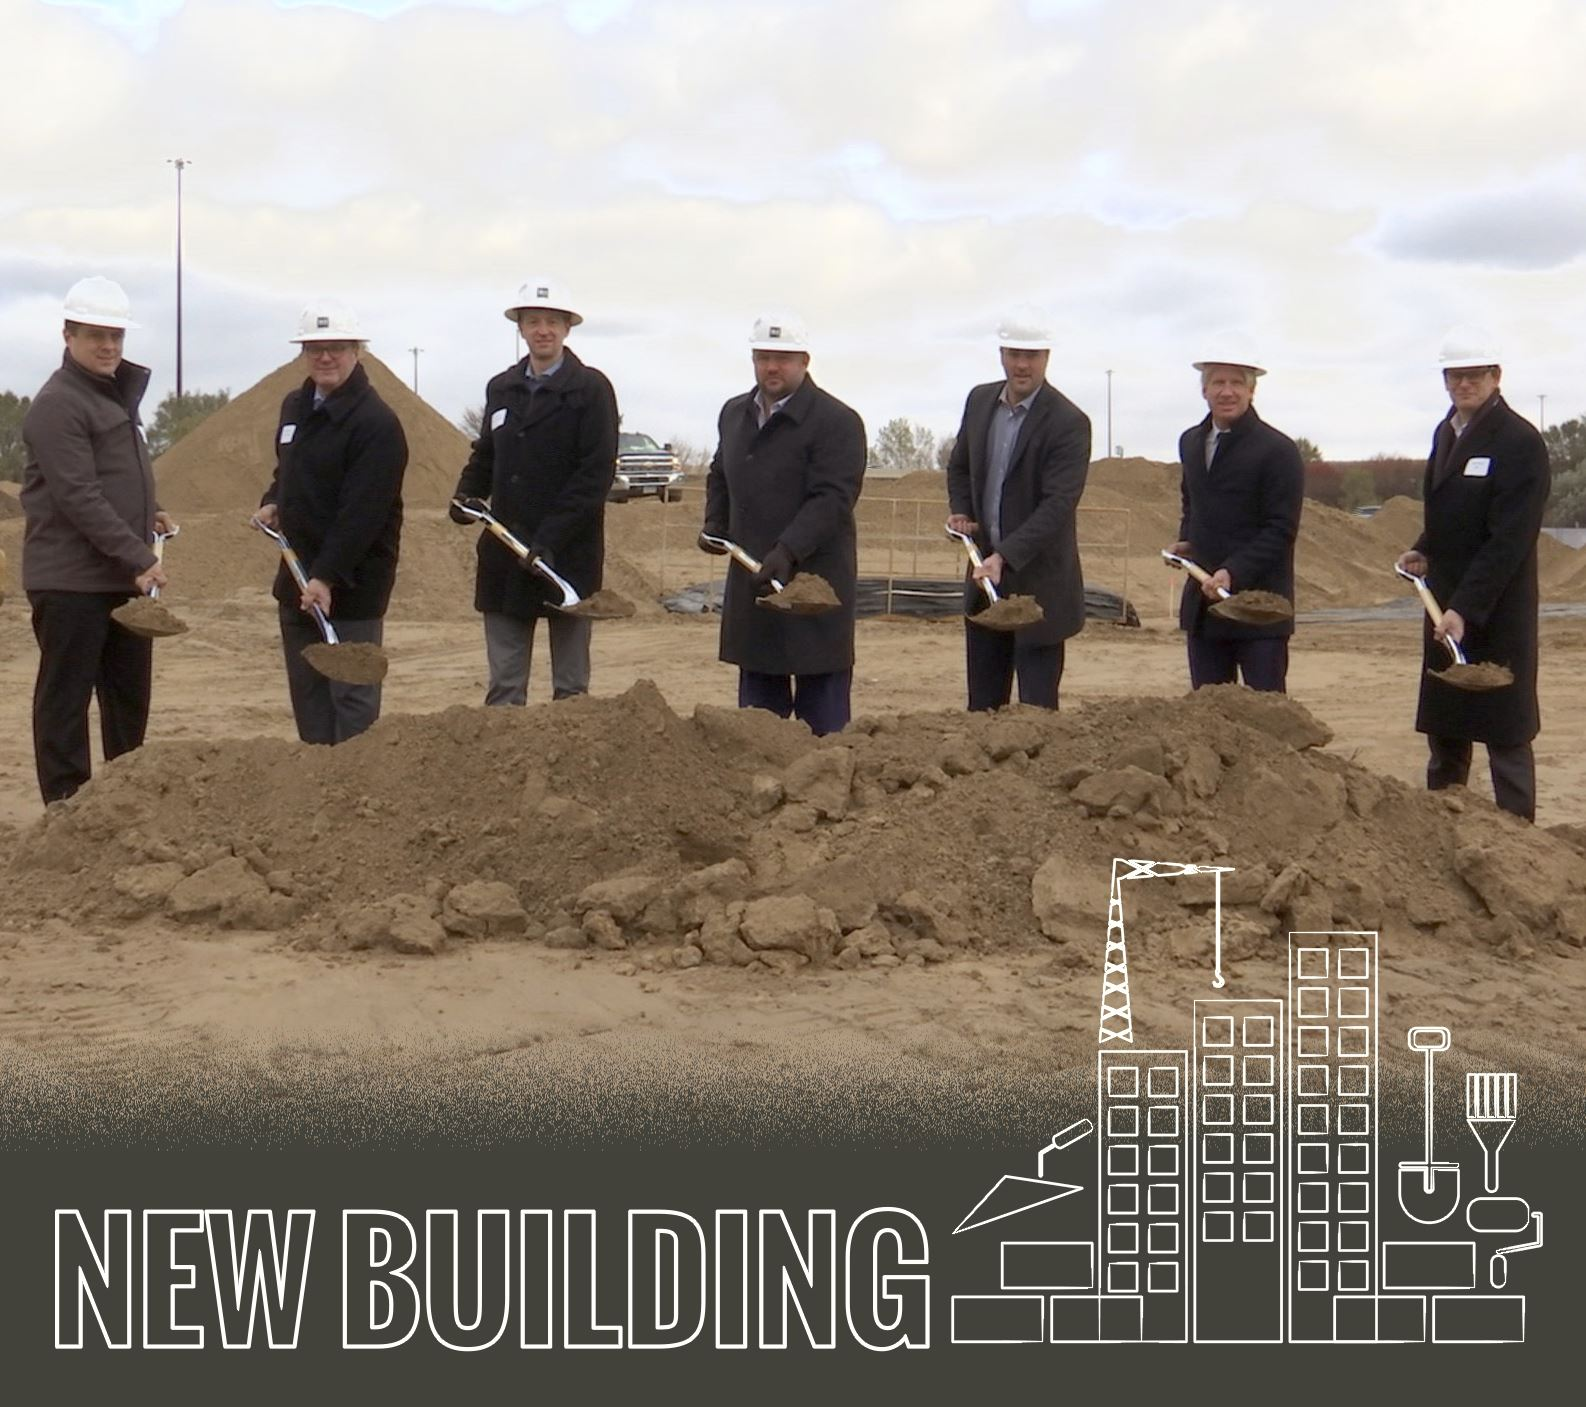 New Building Groundbreaking